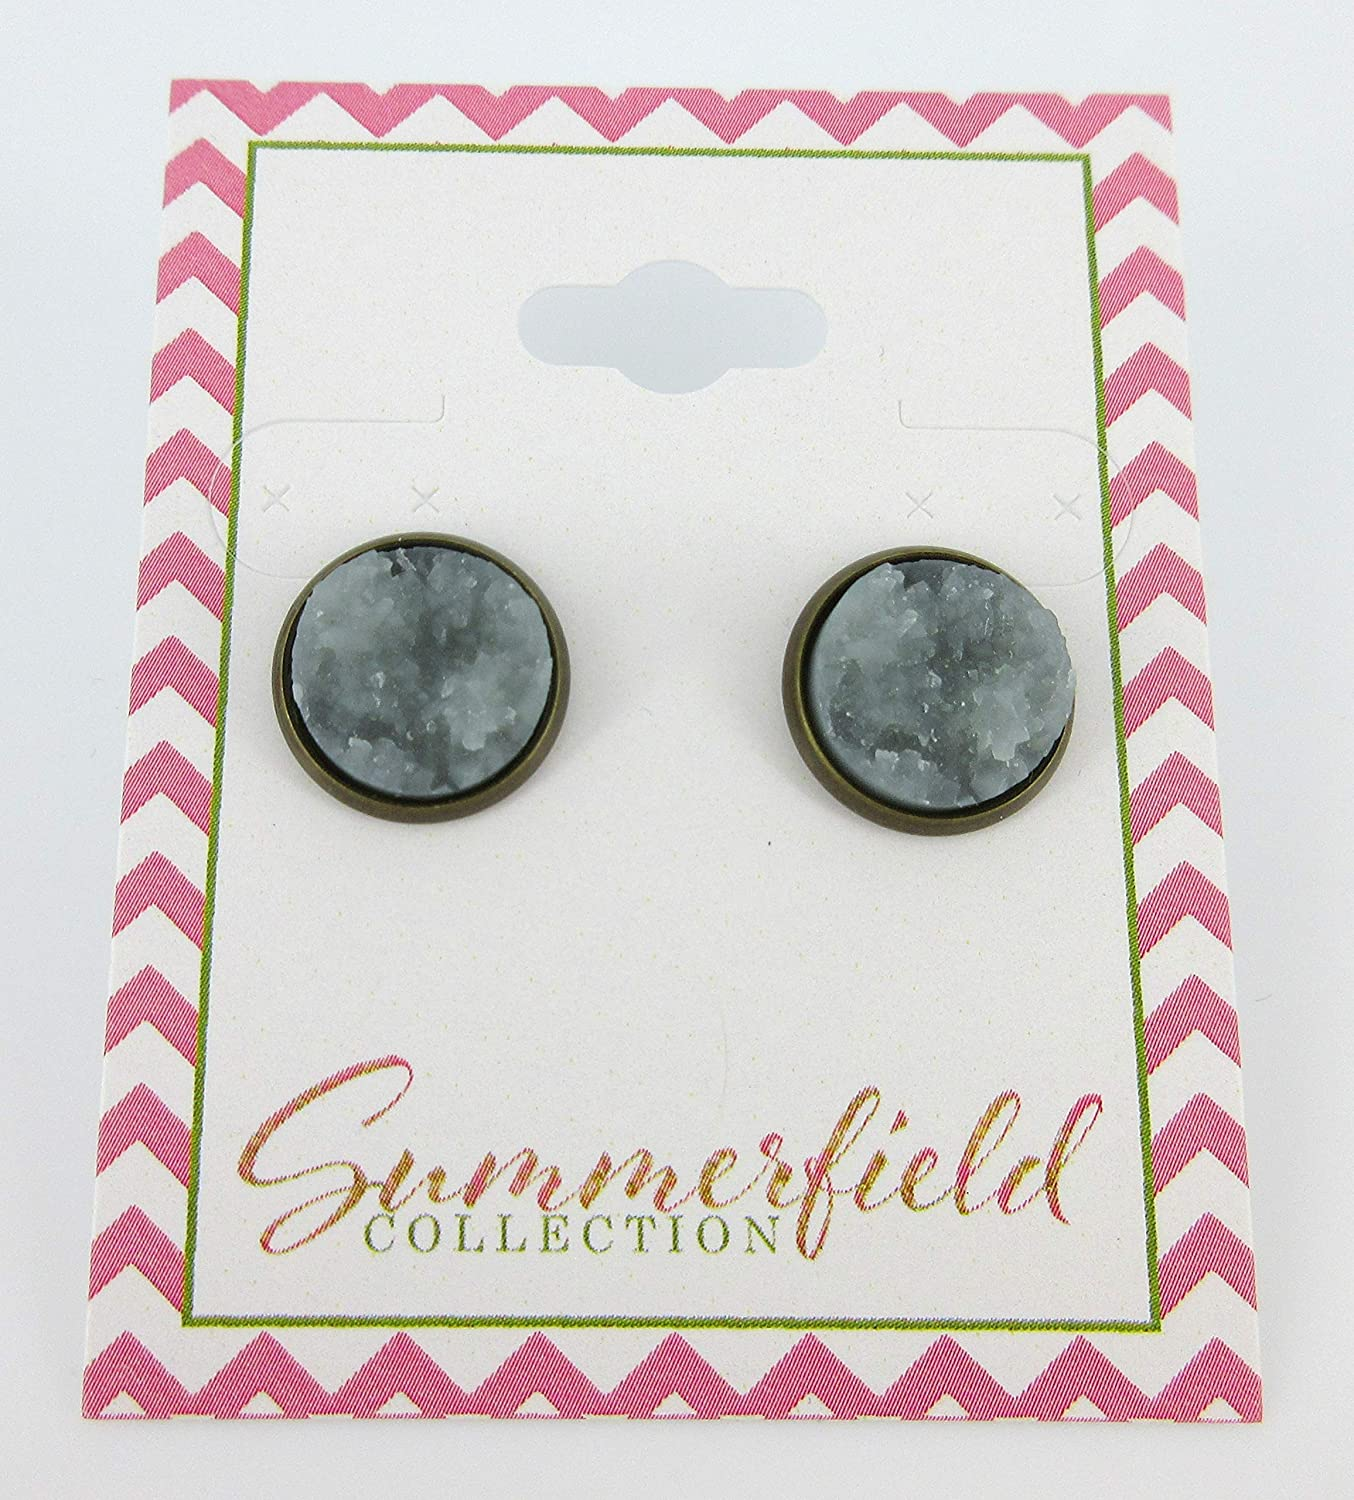 Silver-tone Gold and Pink Faux Druzy Stone Stud Earrings 12mm